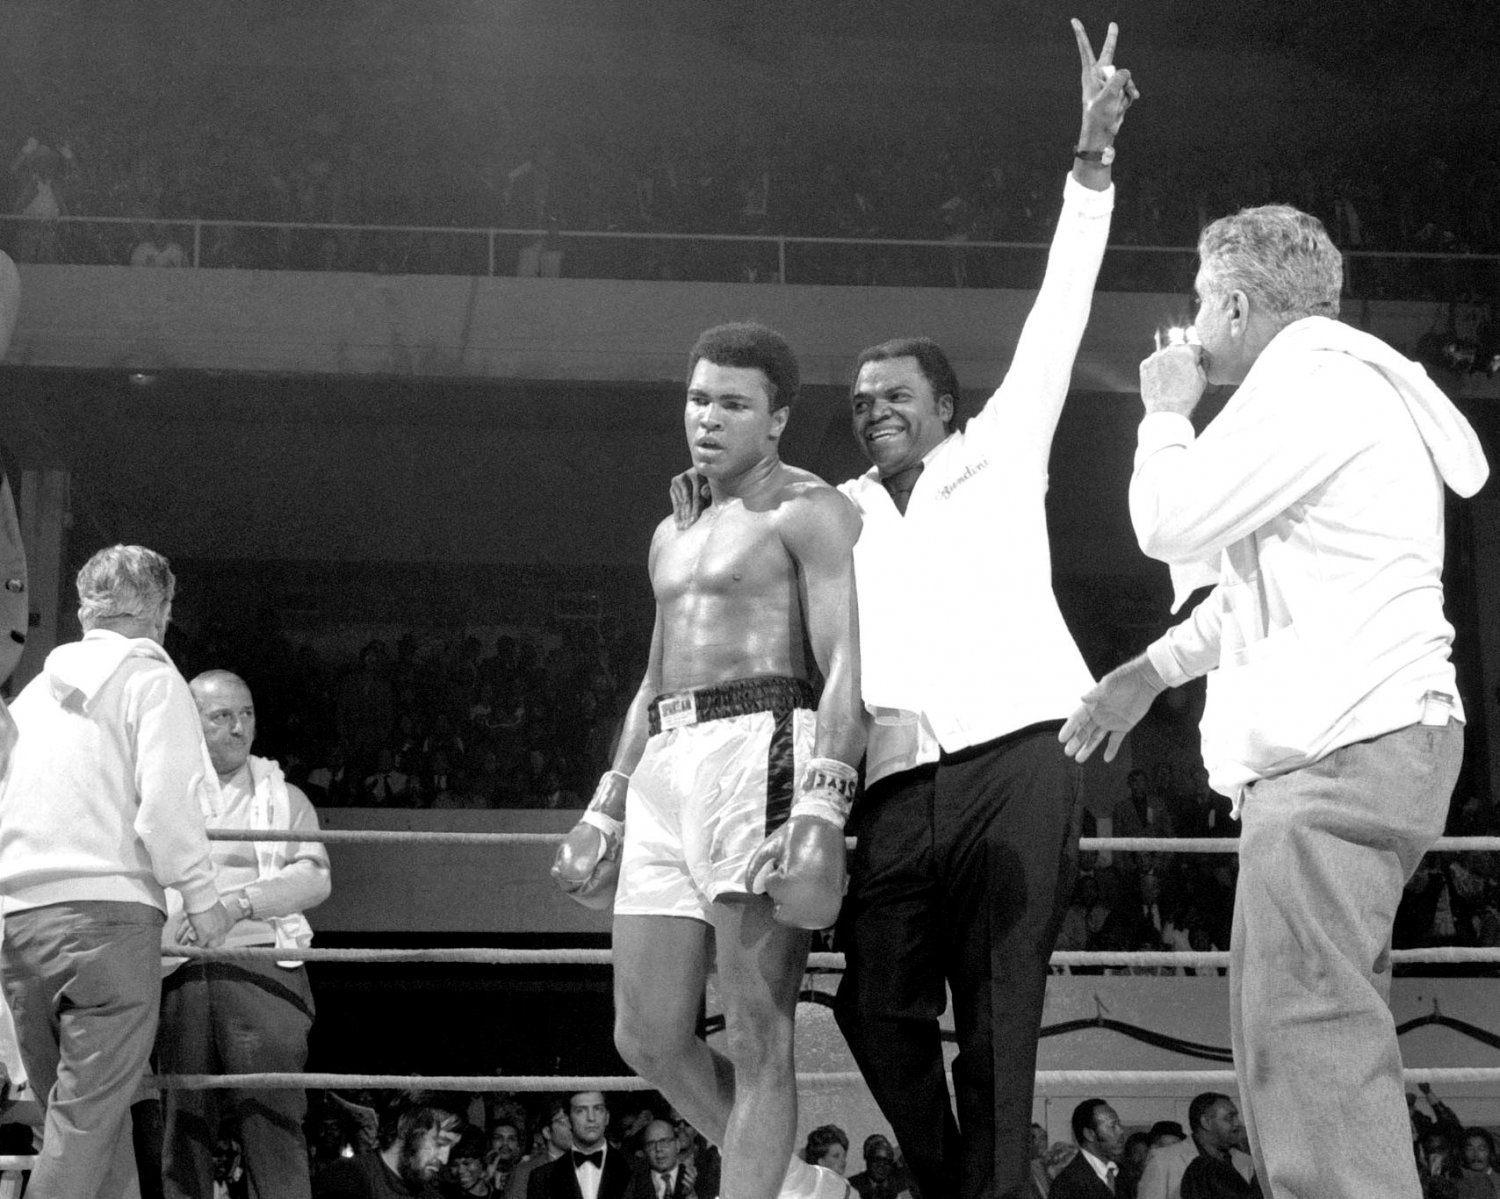 MUHAMMAD ALI AFTER TKO OF JERRY QUARRY IN ATLANTA 8X10 PUBLICITY PHOTO (ZY-163)